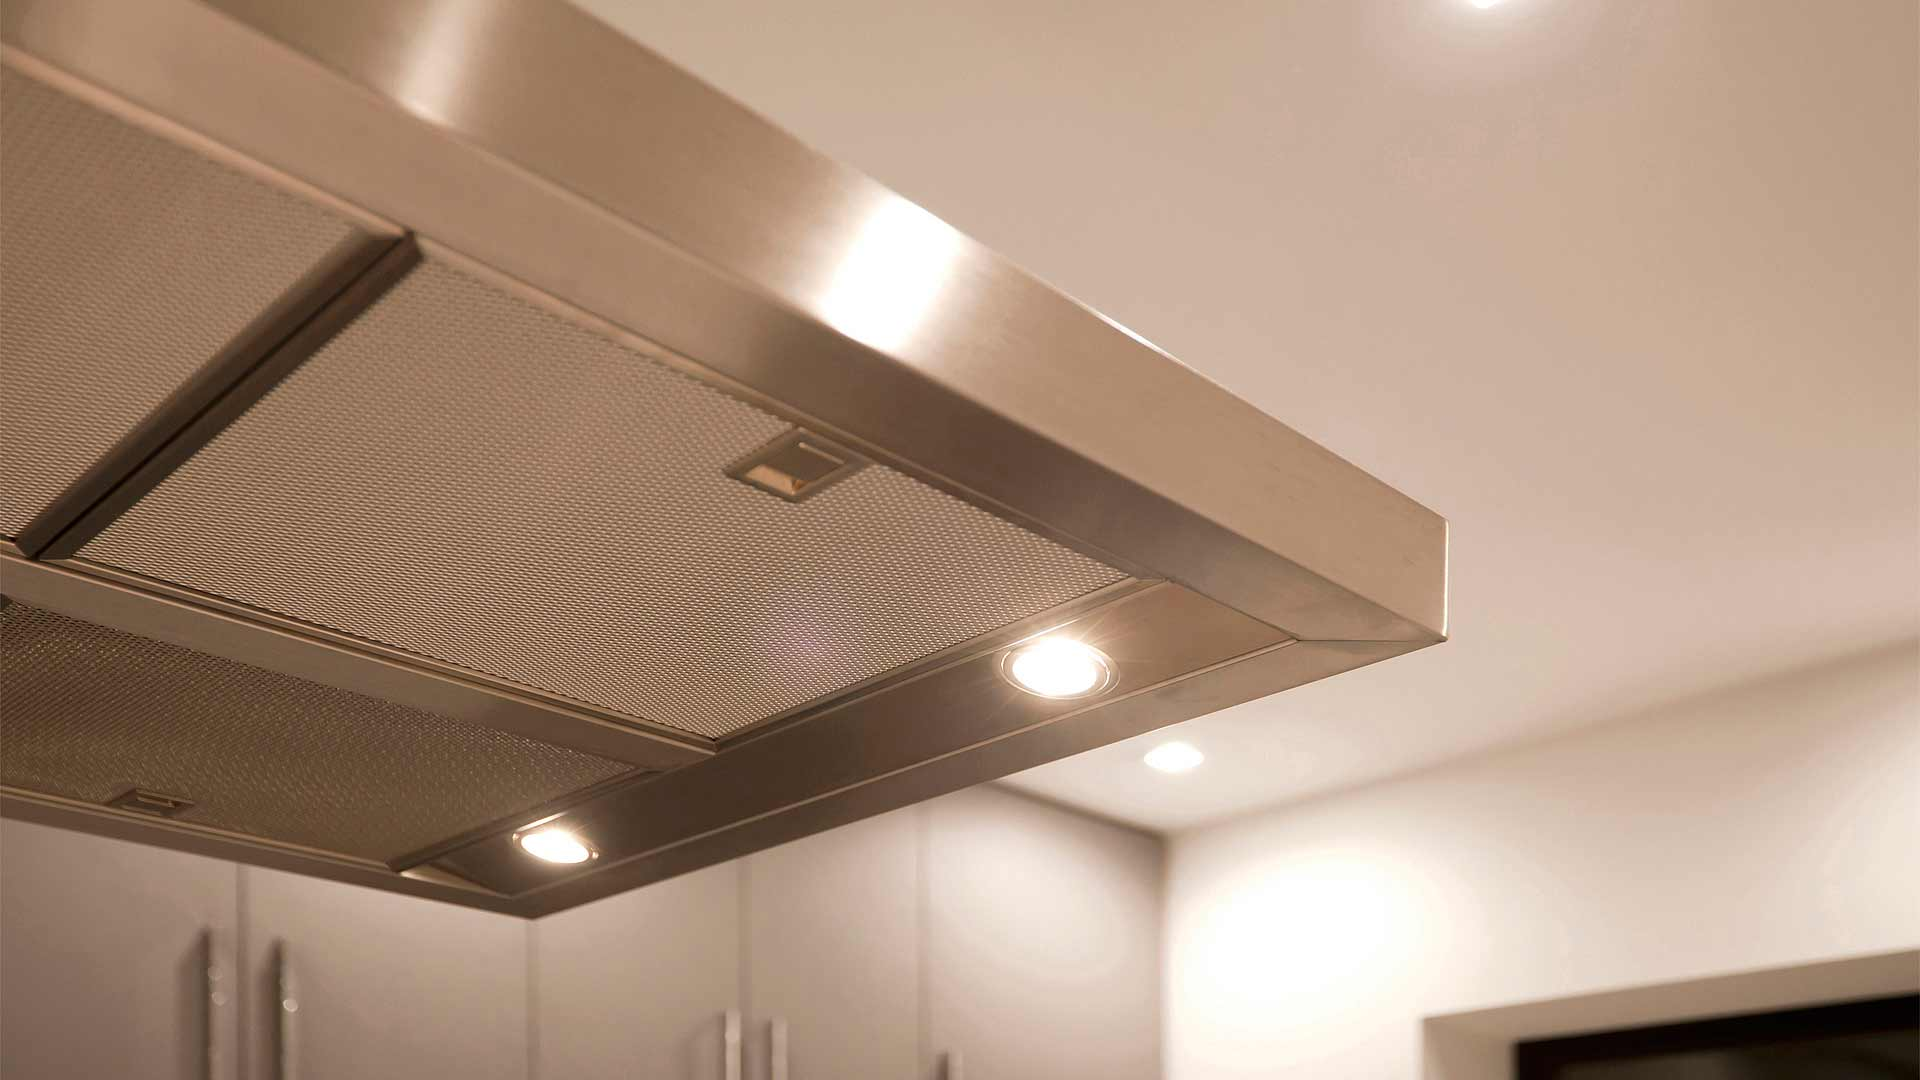 Floating stainless steel kitchen range hood detail - Minimalist Modern - Indian Head Park - Chicago, Illinois - HAUS | Architecture For Modern Lifestyles, Christopher Short, Indianapolis Architect with Joe Trojanowski